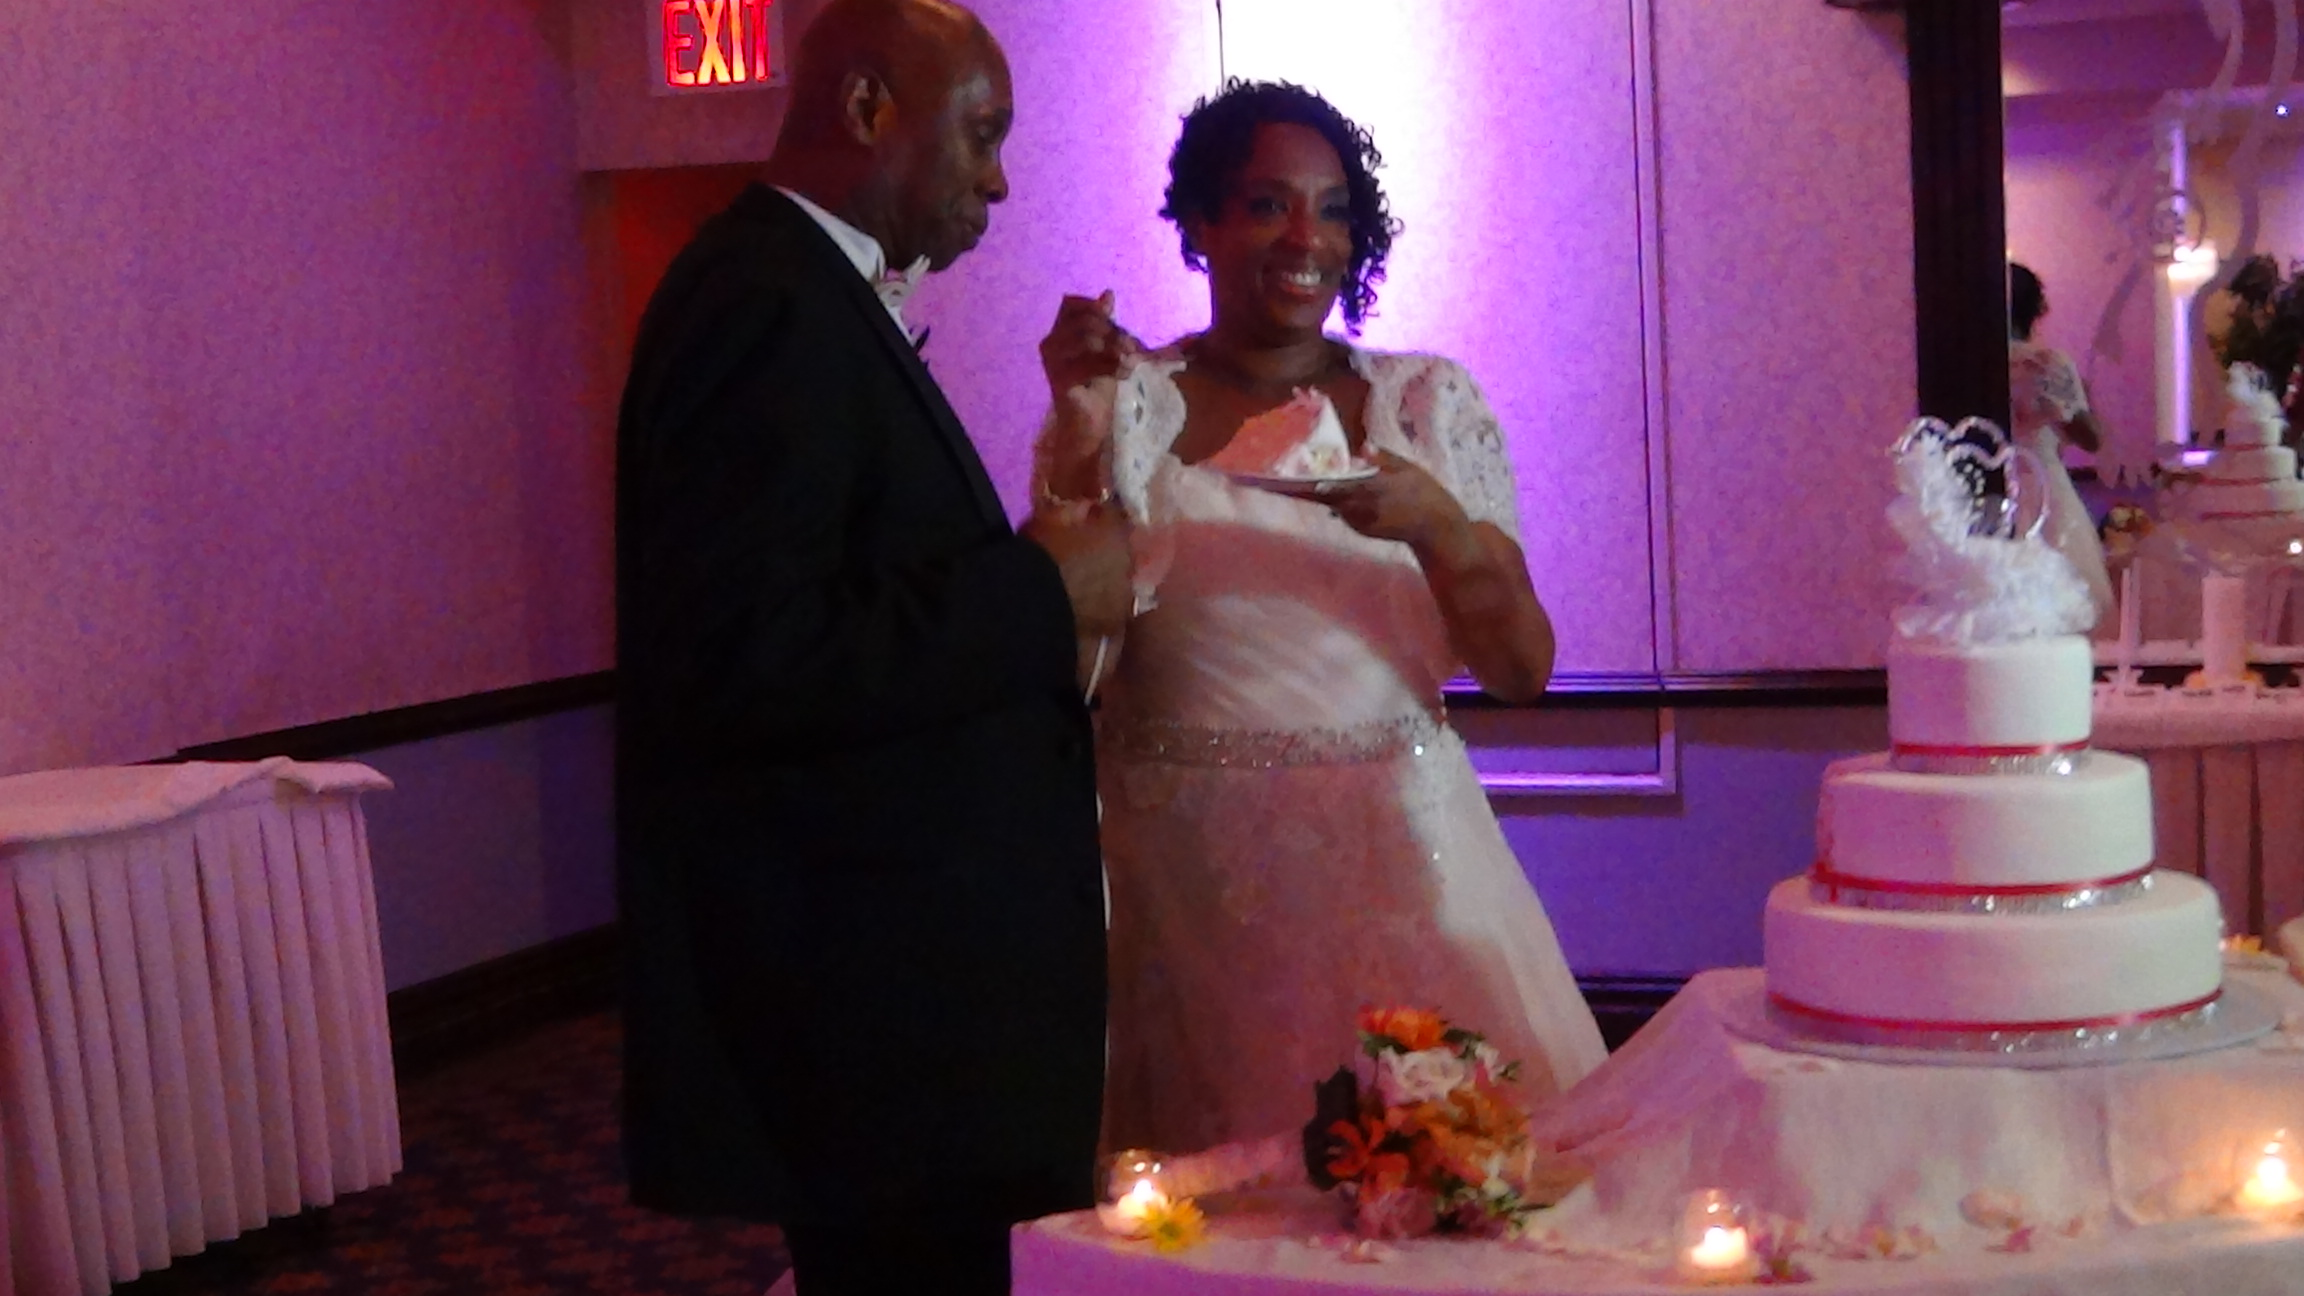 Chandra & Larry Oct 11, 2014